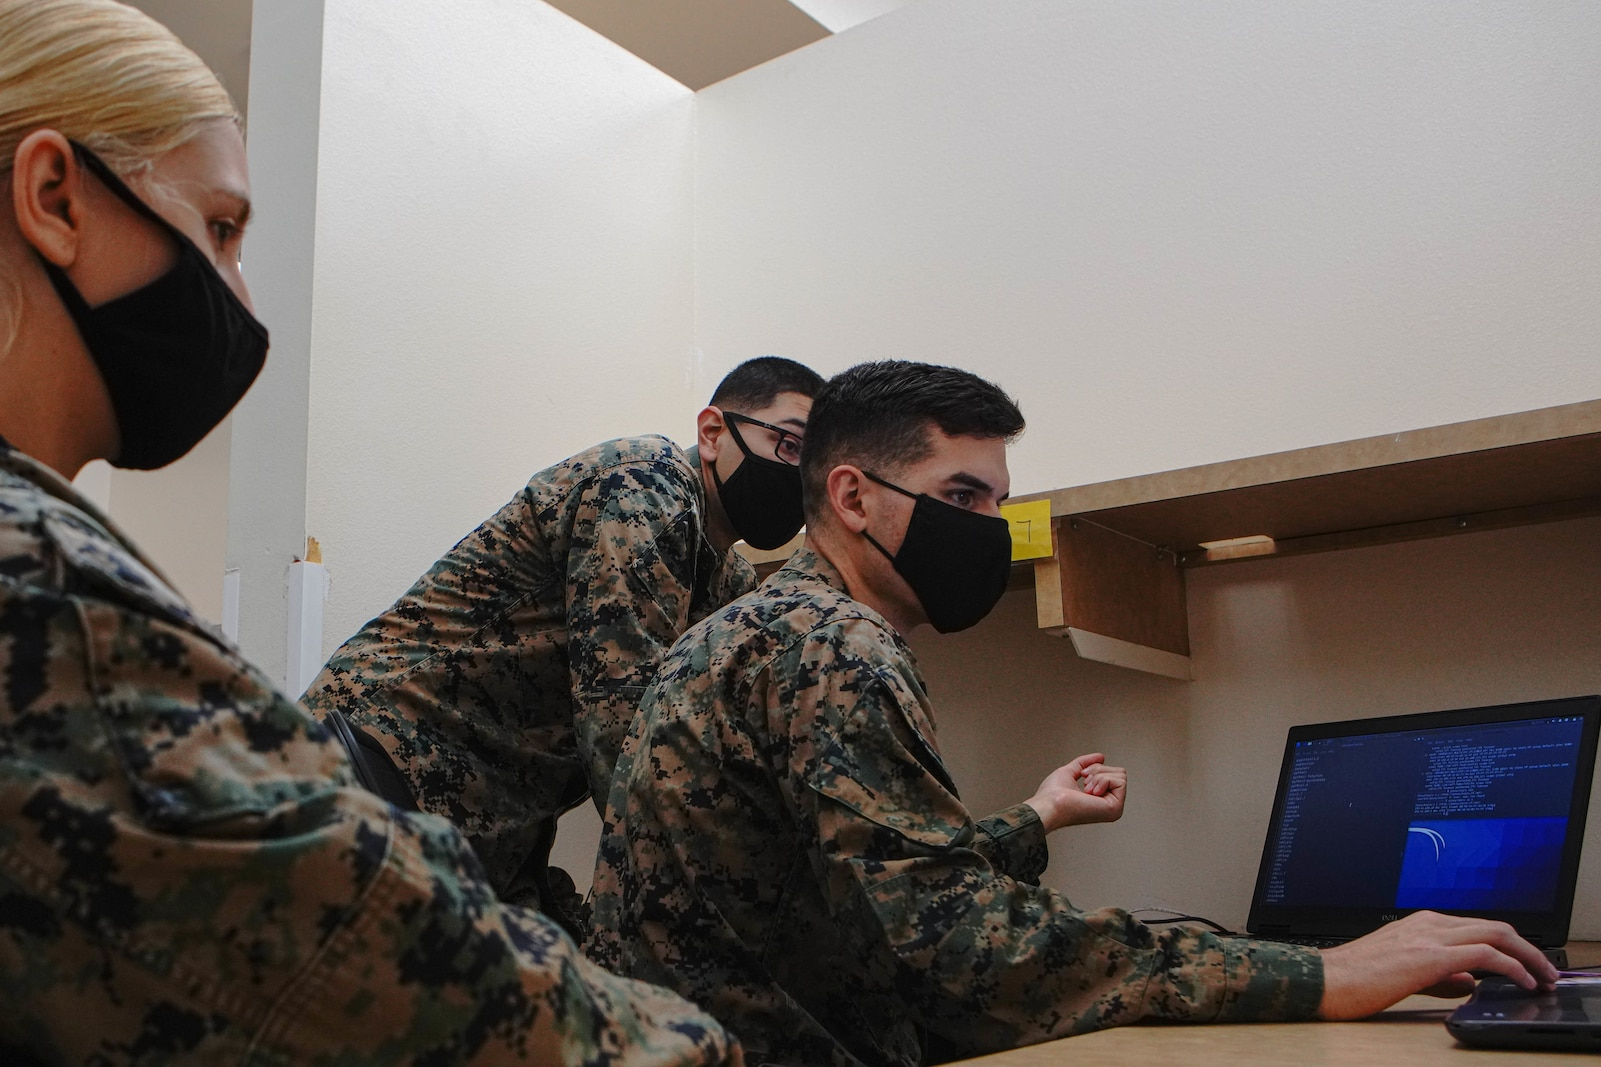 U.S. Marine Corps Lance Cpl. Ian Bergman, middle, a defensive cyberspace operator, Lance Cpl. Enrique Medina, right, a defensive cyberspace operator, and Cpl. Bethany Leer, left, an intelligence analyst with 9th Communication Battalion, I Marine Expeditionary Force Information Group, hack into a system while engaged in the Marine Corps 2020 Cyber Games at Marine Corps Base Camp Pendleton, California, Nov. 19, 2020. 9th Comm participated in the cyber games to enhance their skills and to develop tactics and techniques while competing against other teams across the United States. (U.S. Marine Corps photo by Lance Cpl. Patrick Katz)